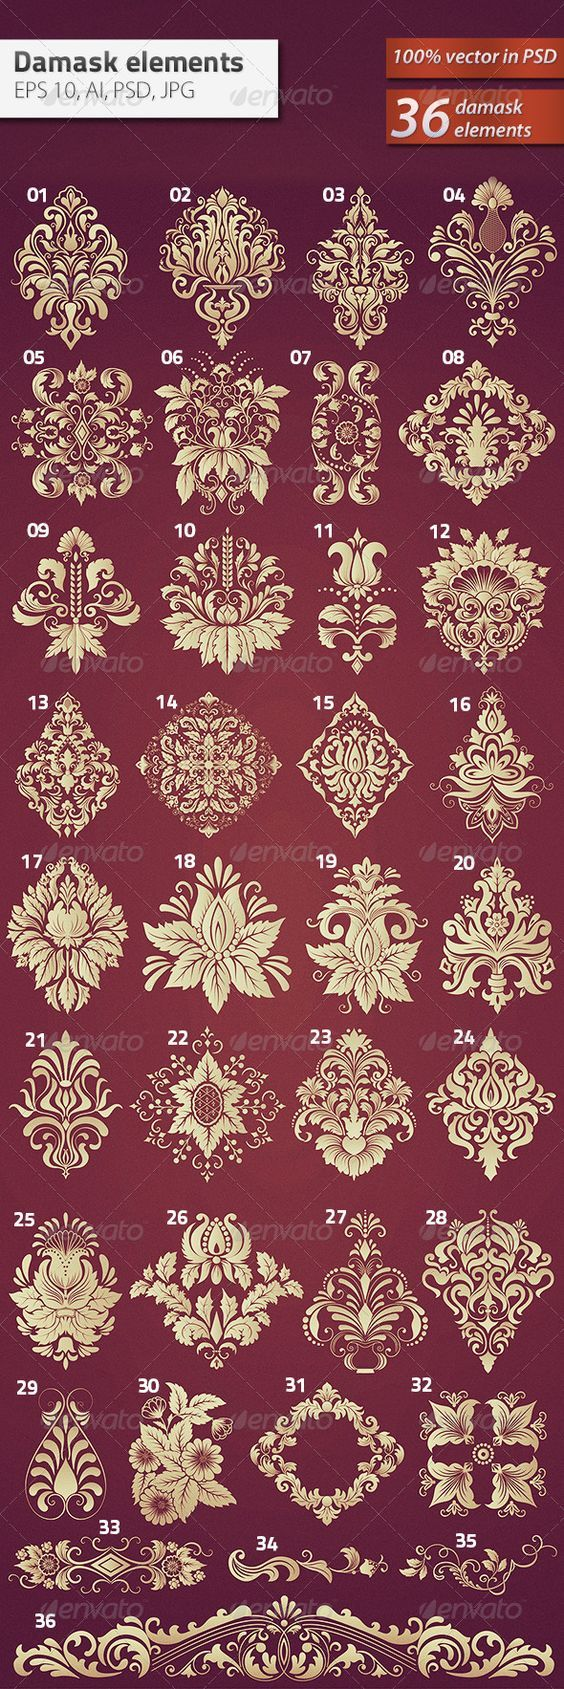 https://graphicriver.net/item/36-damask-ornamental-elements/6184104?ref=damiamio&ref=damiamio&clickthrough_id=829673186&redirect_back=true